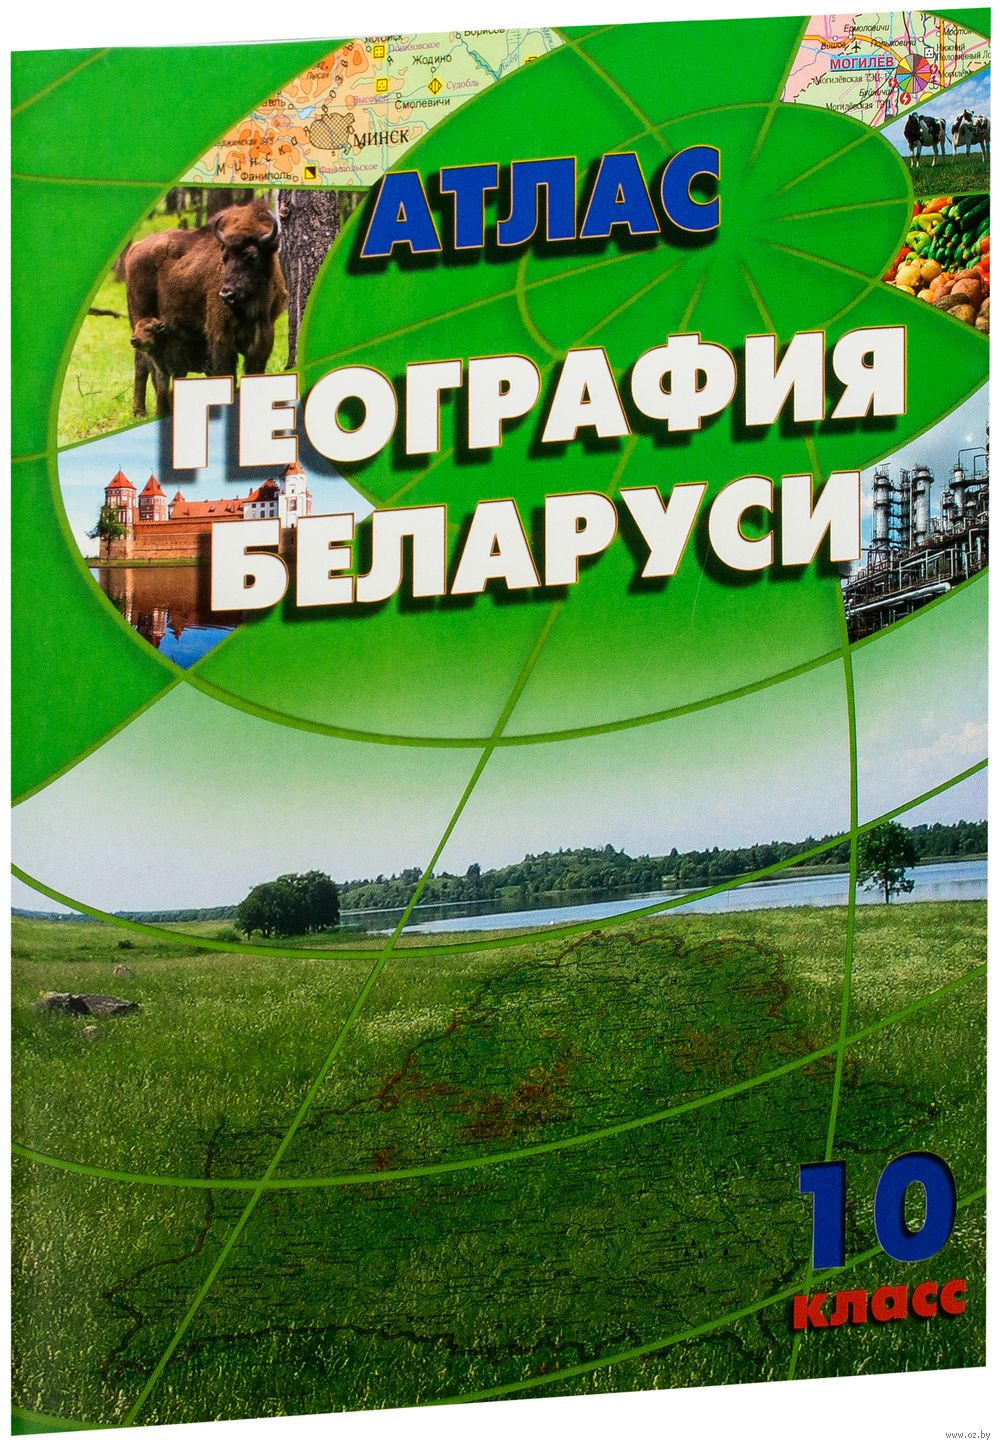 shop Refractory Organic Substances in the